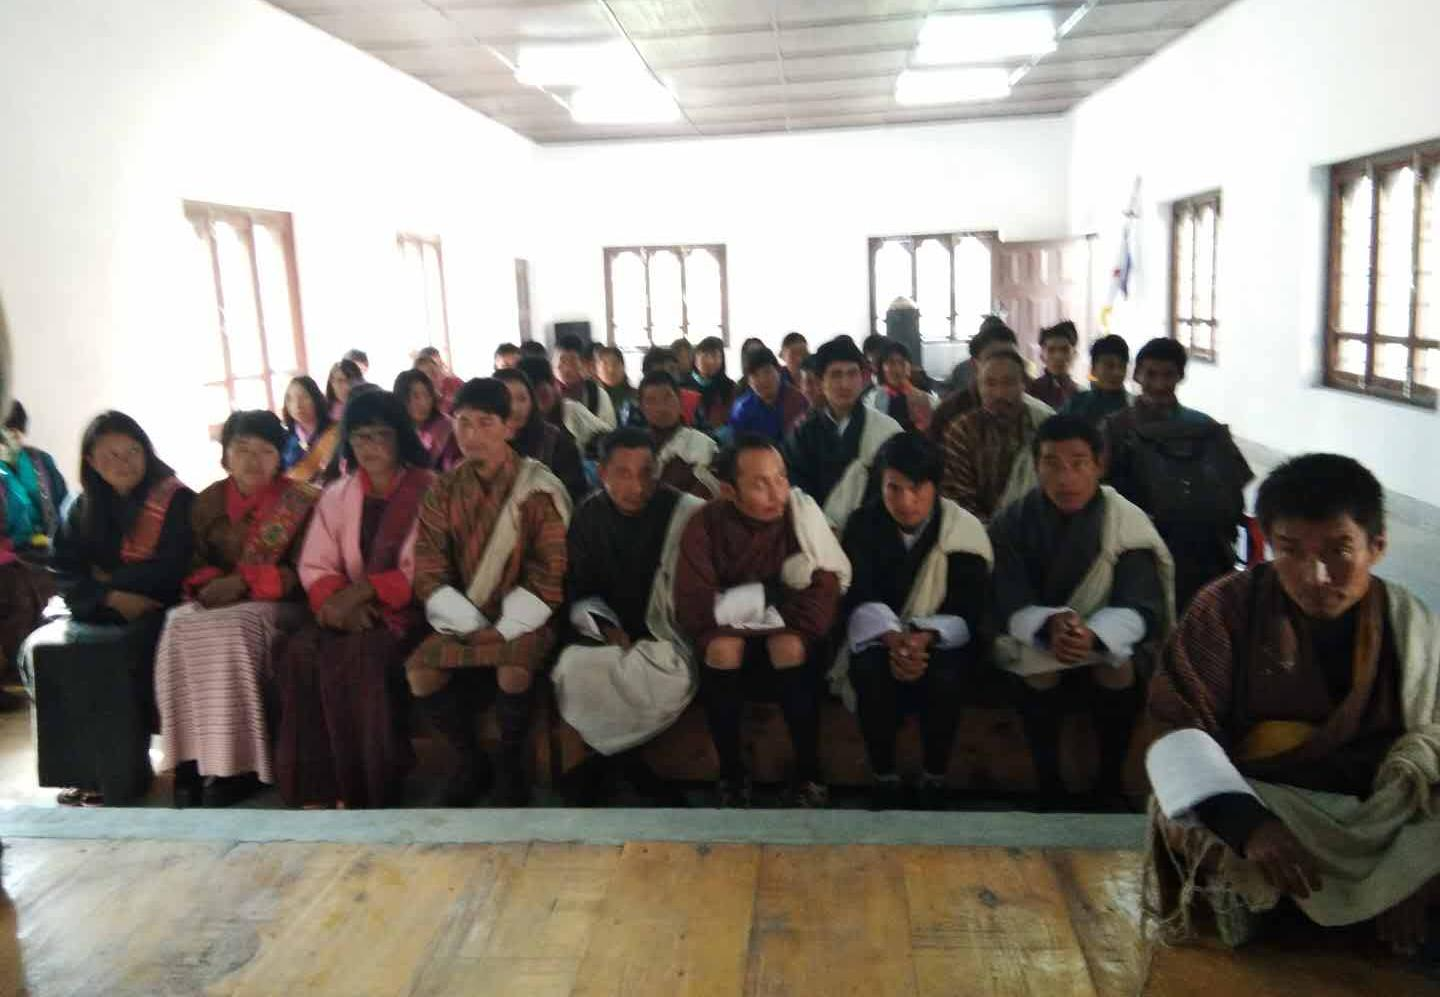 Naja Gewog-The first gewog where the Annual Census started